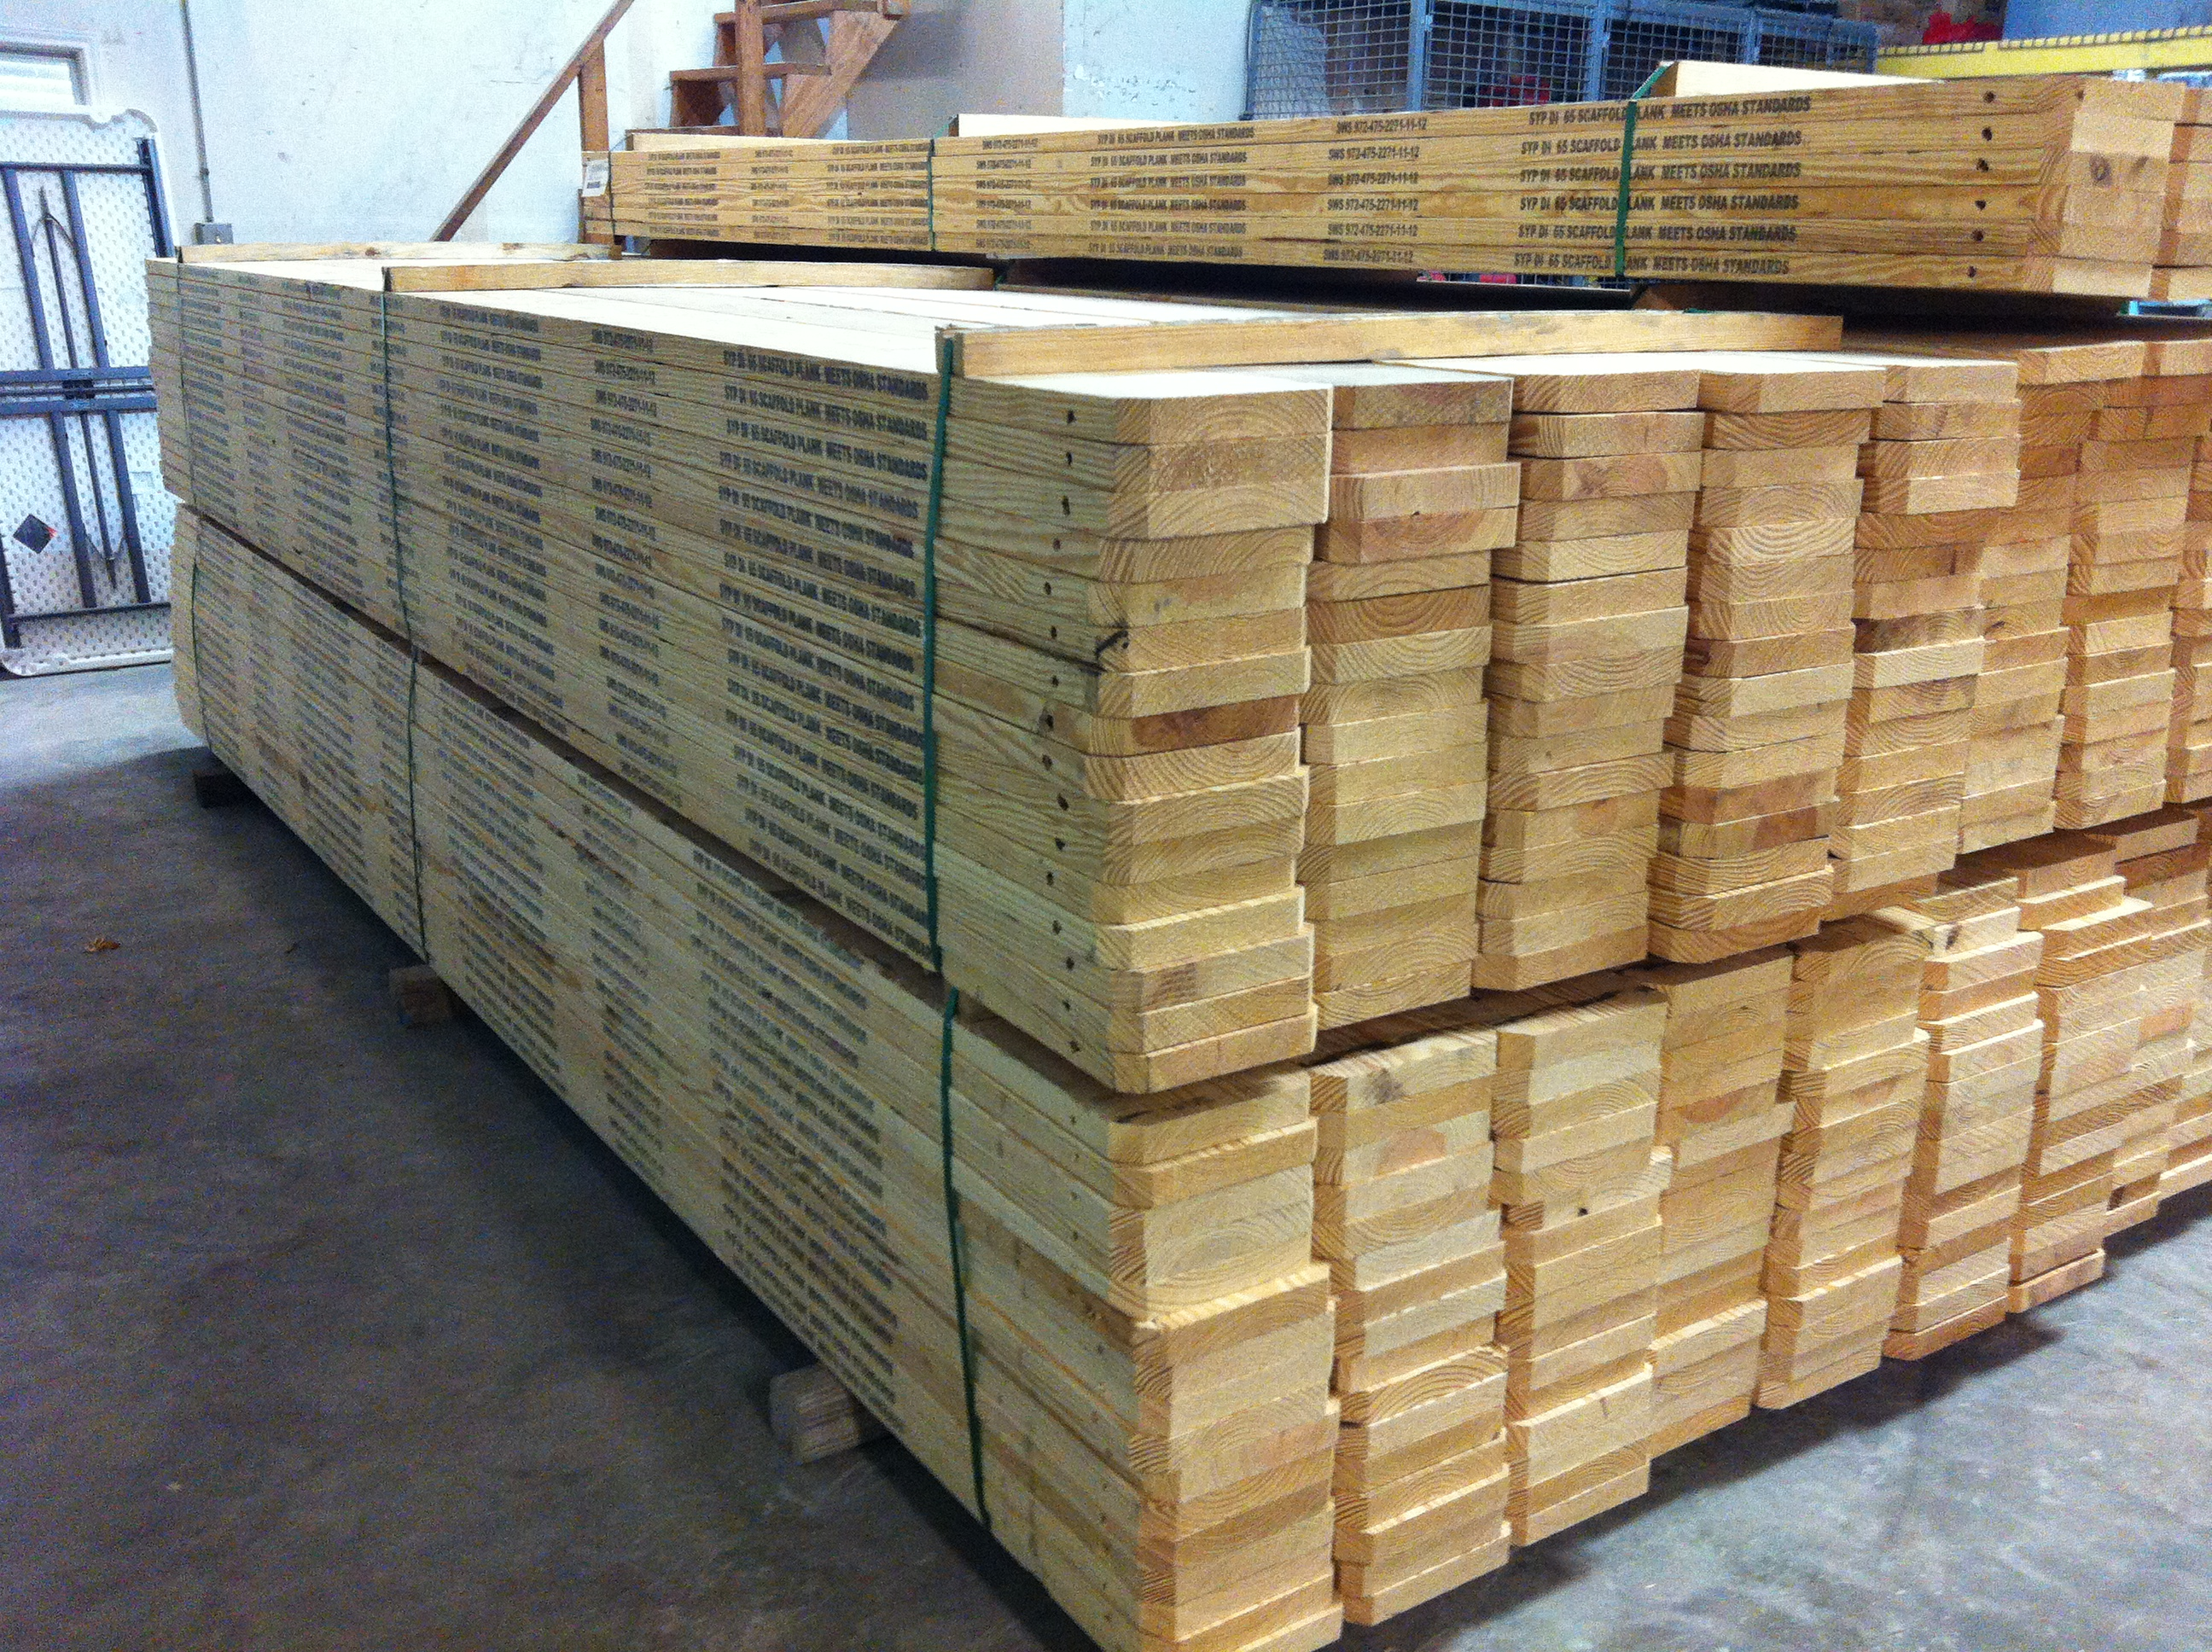 Aluminum Walk Board Manufacturers Mail: Scaffold Boards For Sale At USA Scaffolding